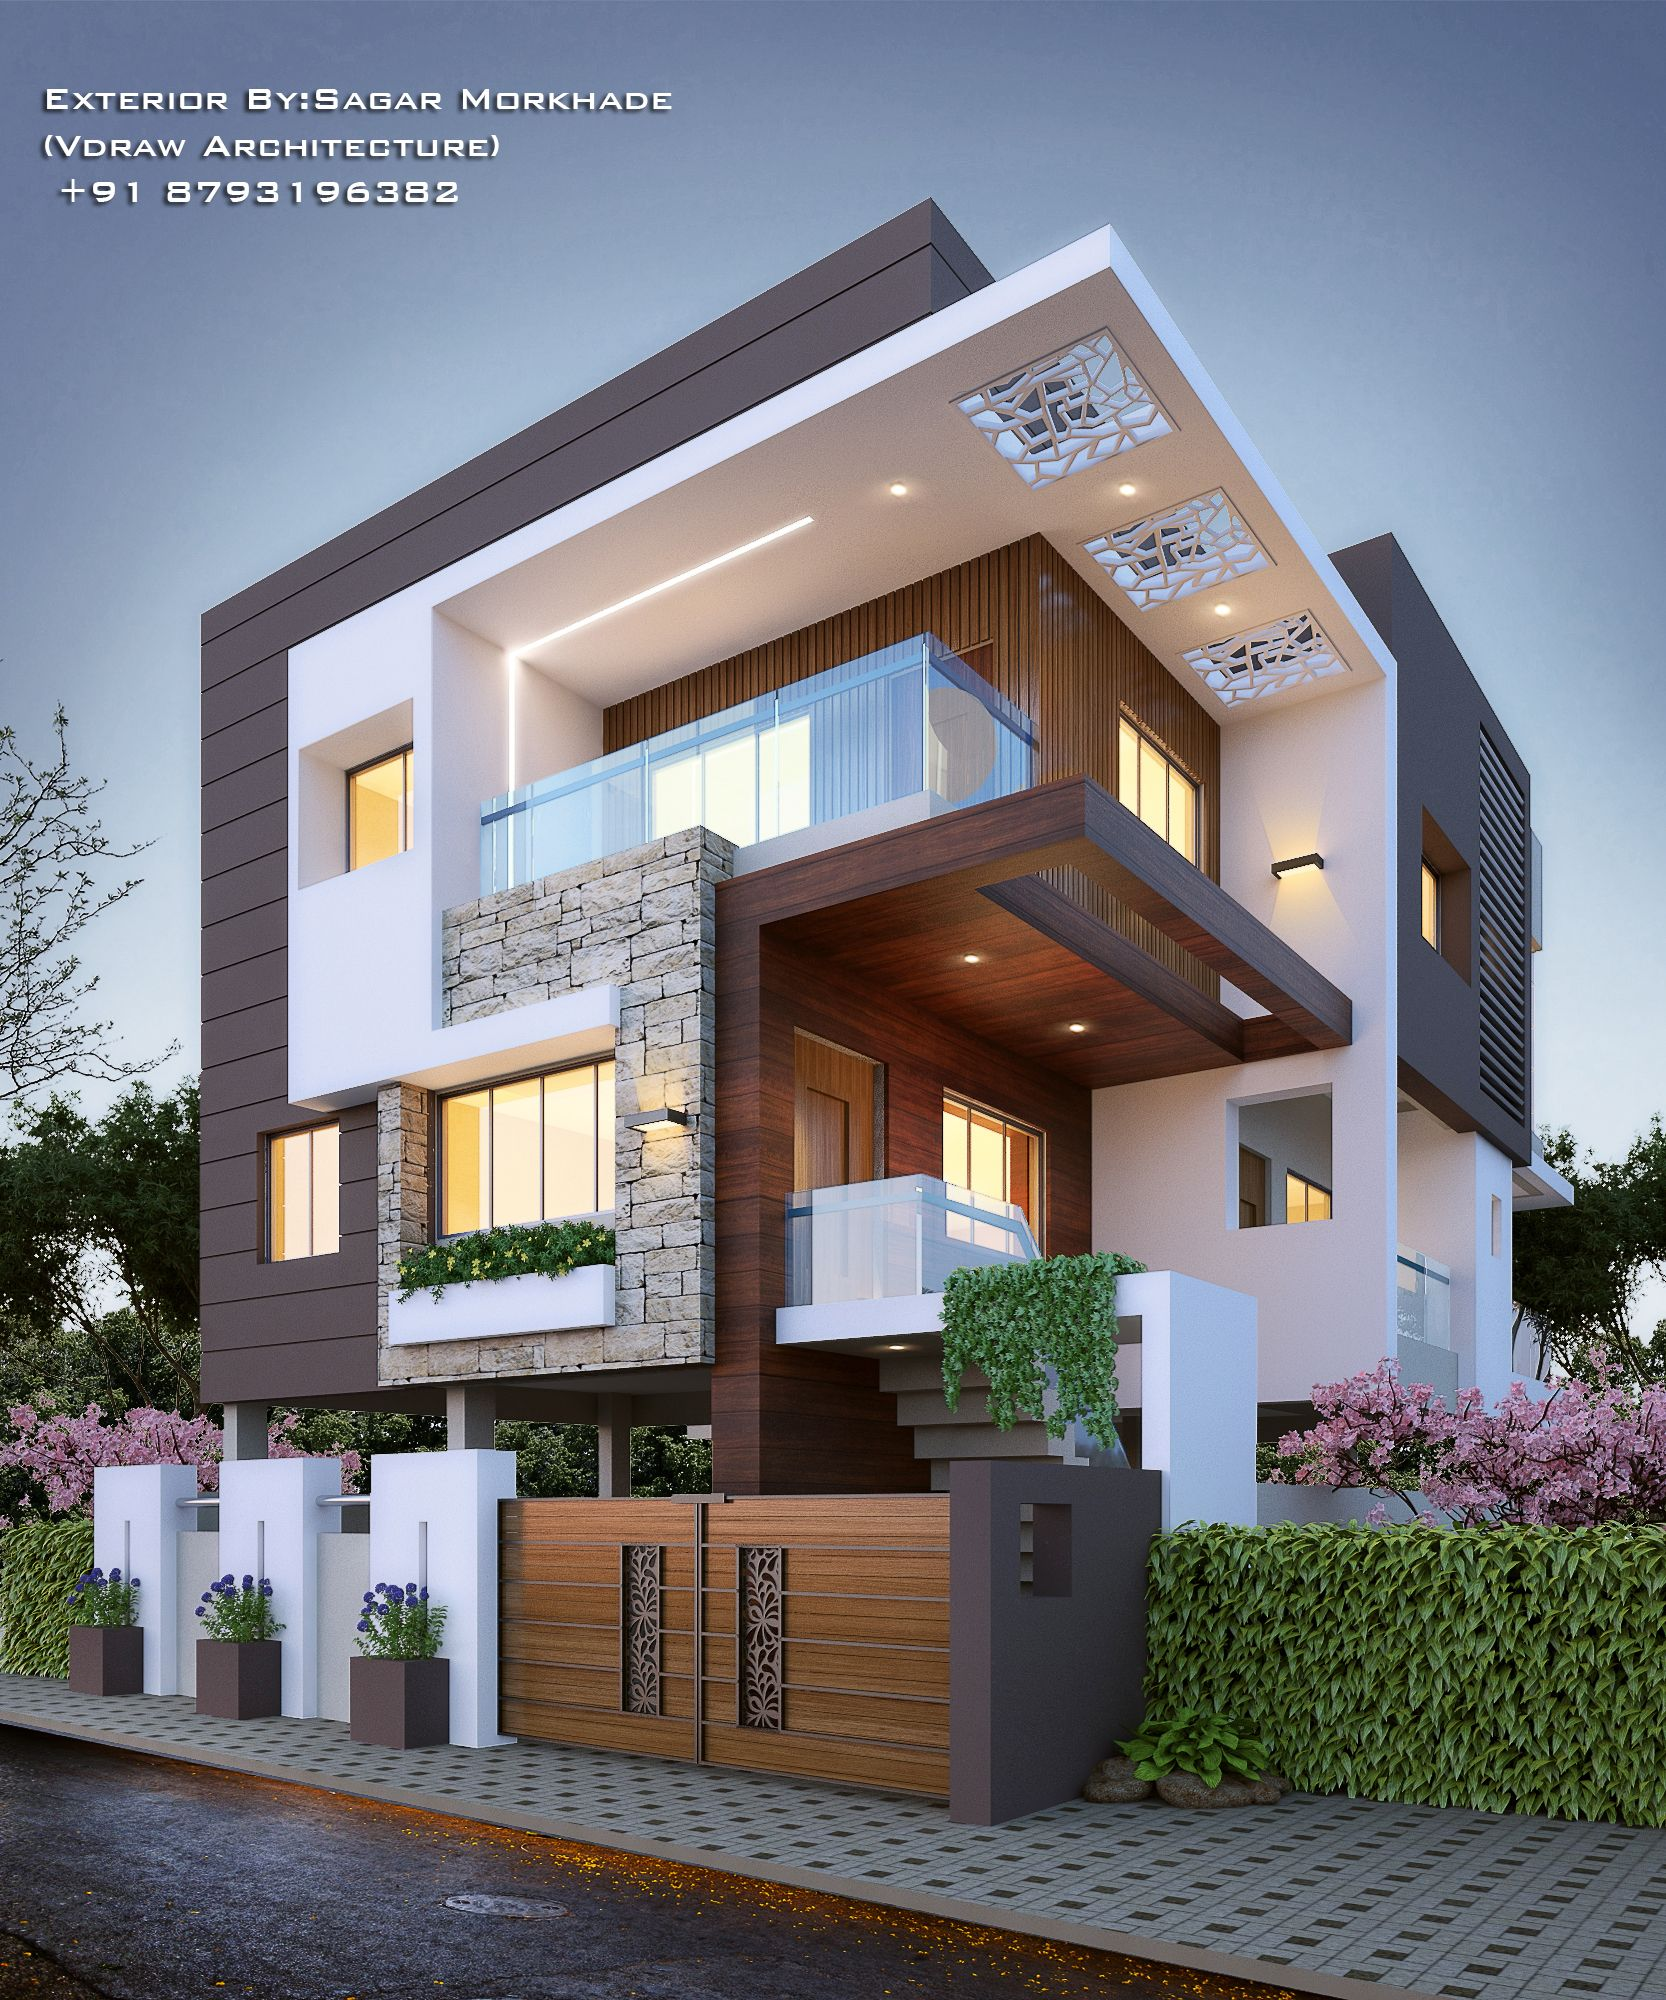 Home Design Exterior Ideas In India: #Modern #Residential #Exterior By, Ar. Sagar Morkhade